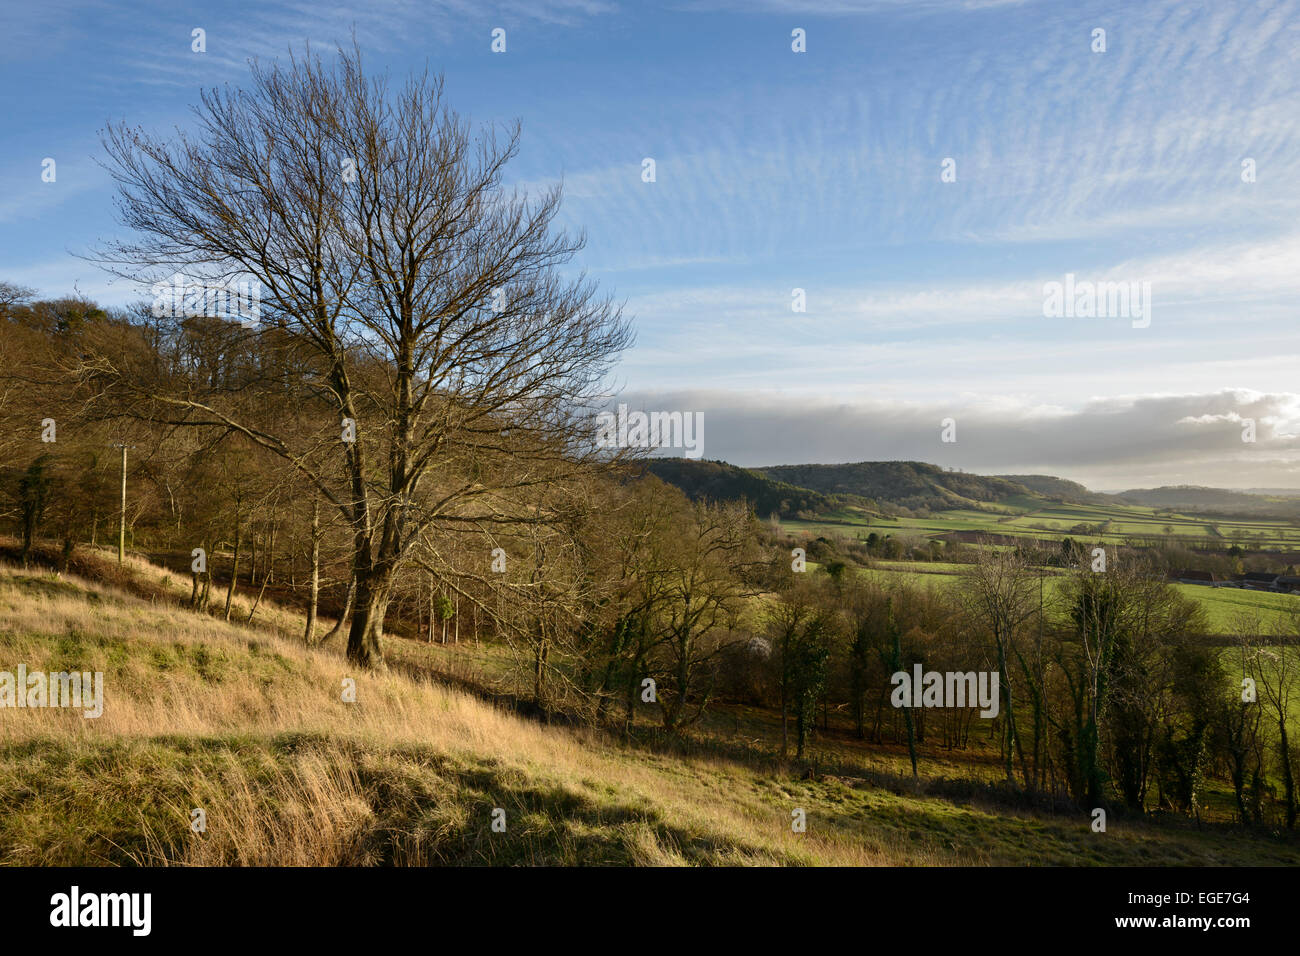 View towards Copley Wood from Collard Hill in the Polden Hills near Compton Dundon, Somerset. Stock Photo